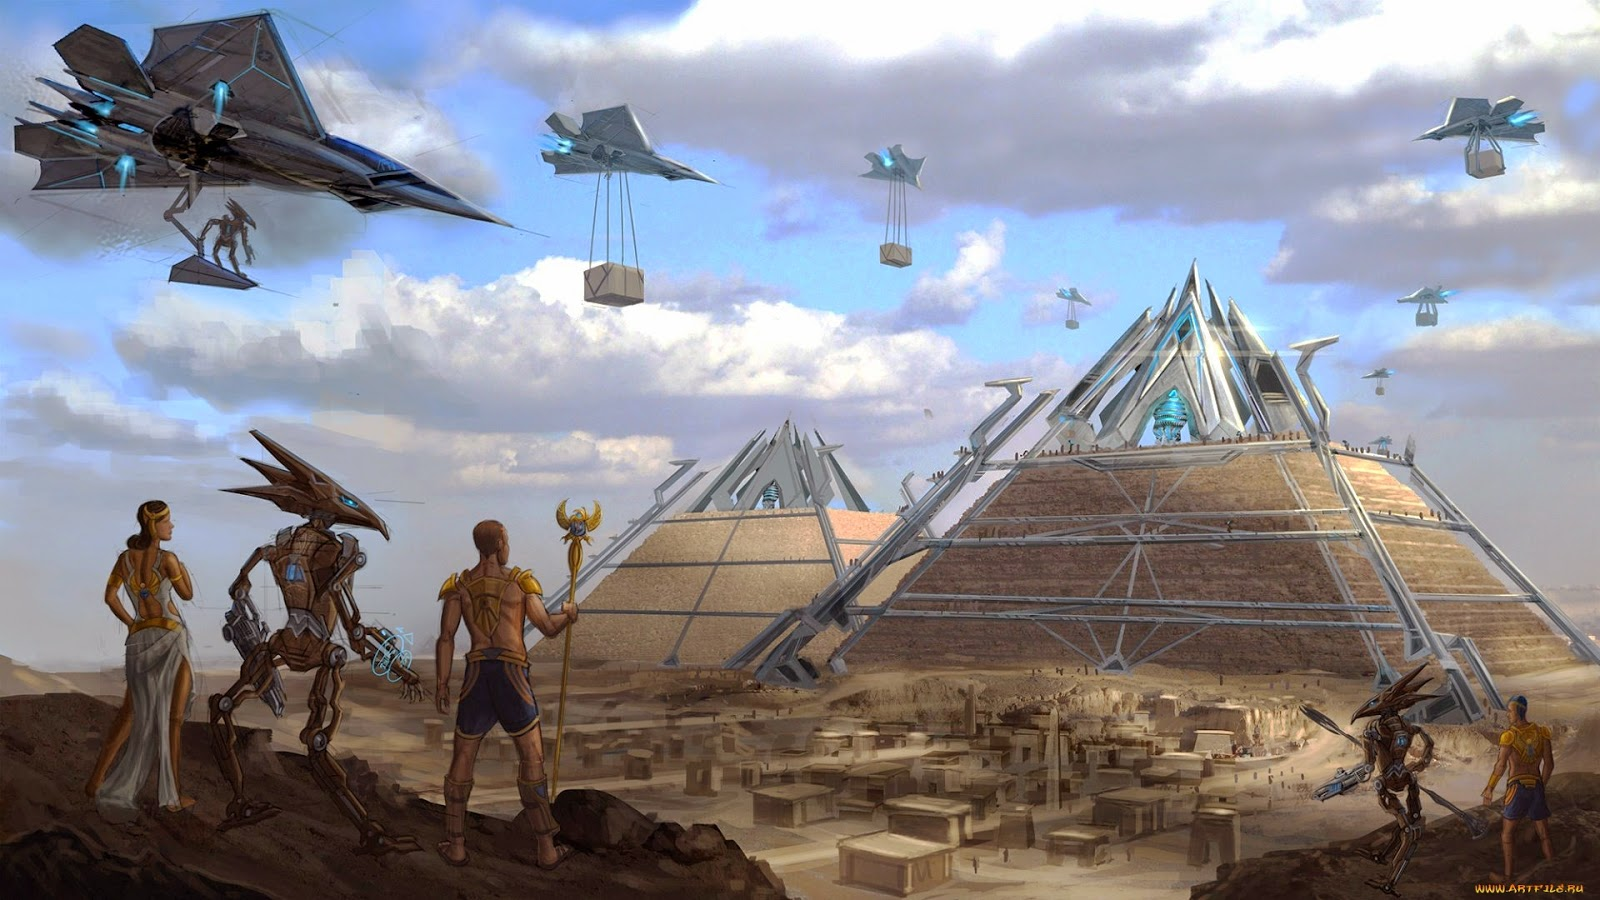 Ancient Black Astronauts and Extraterrestrial Jihads: Islamic Science Fiction as Urban Mythology